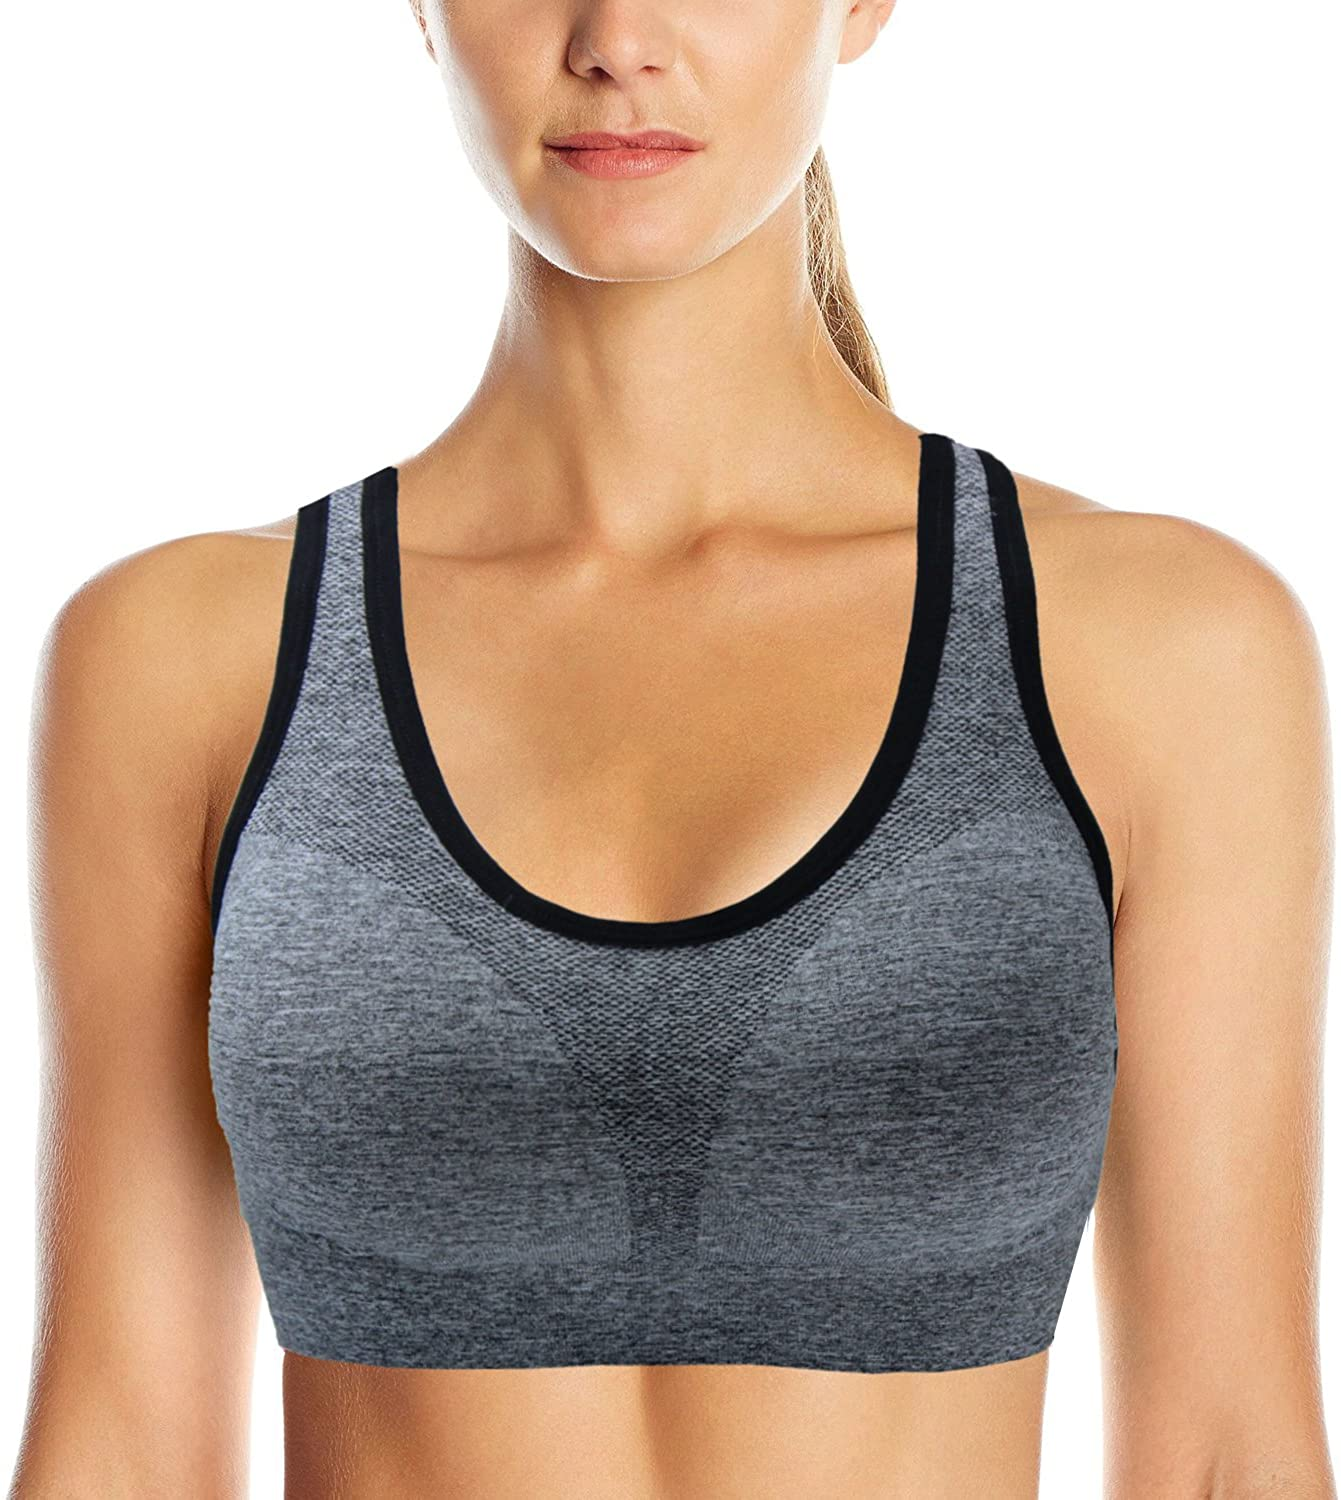 Best Padded Sports Bra for a Small Chest 1 8 Best Padded Bras for a Small Chest - Bust-Boosters & Natural Shapes!